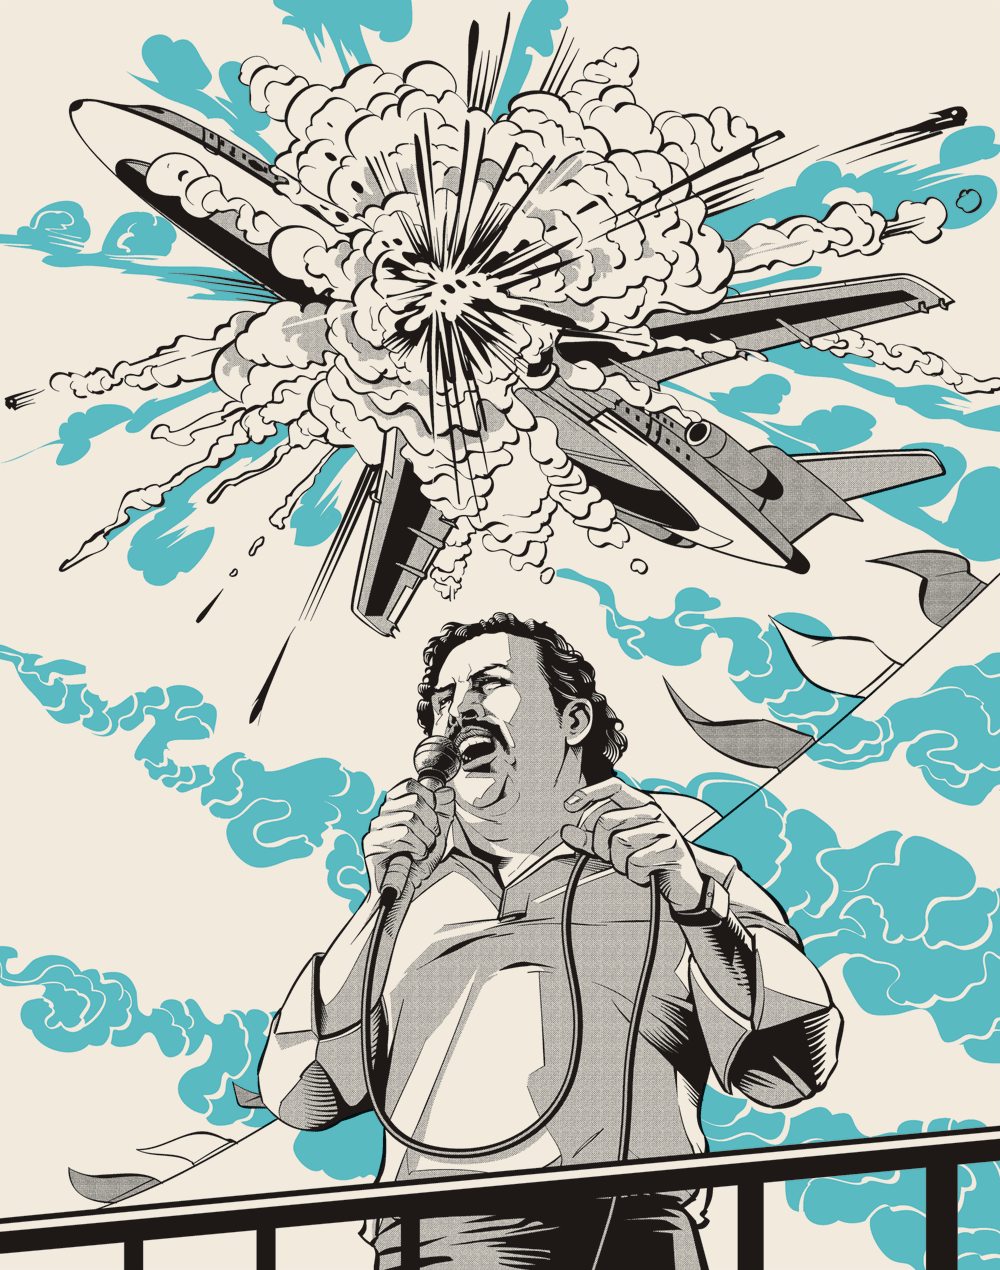 Pablo Escobar illustrations5